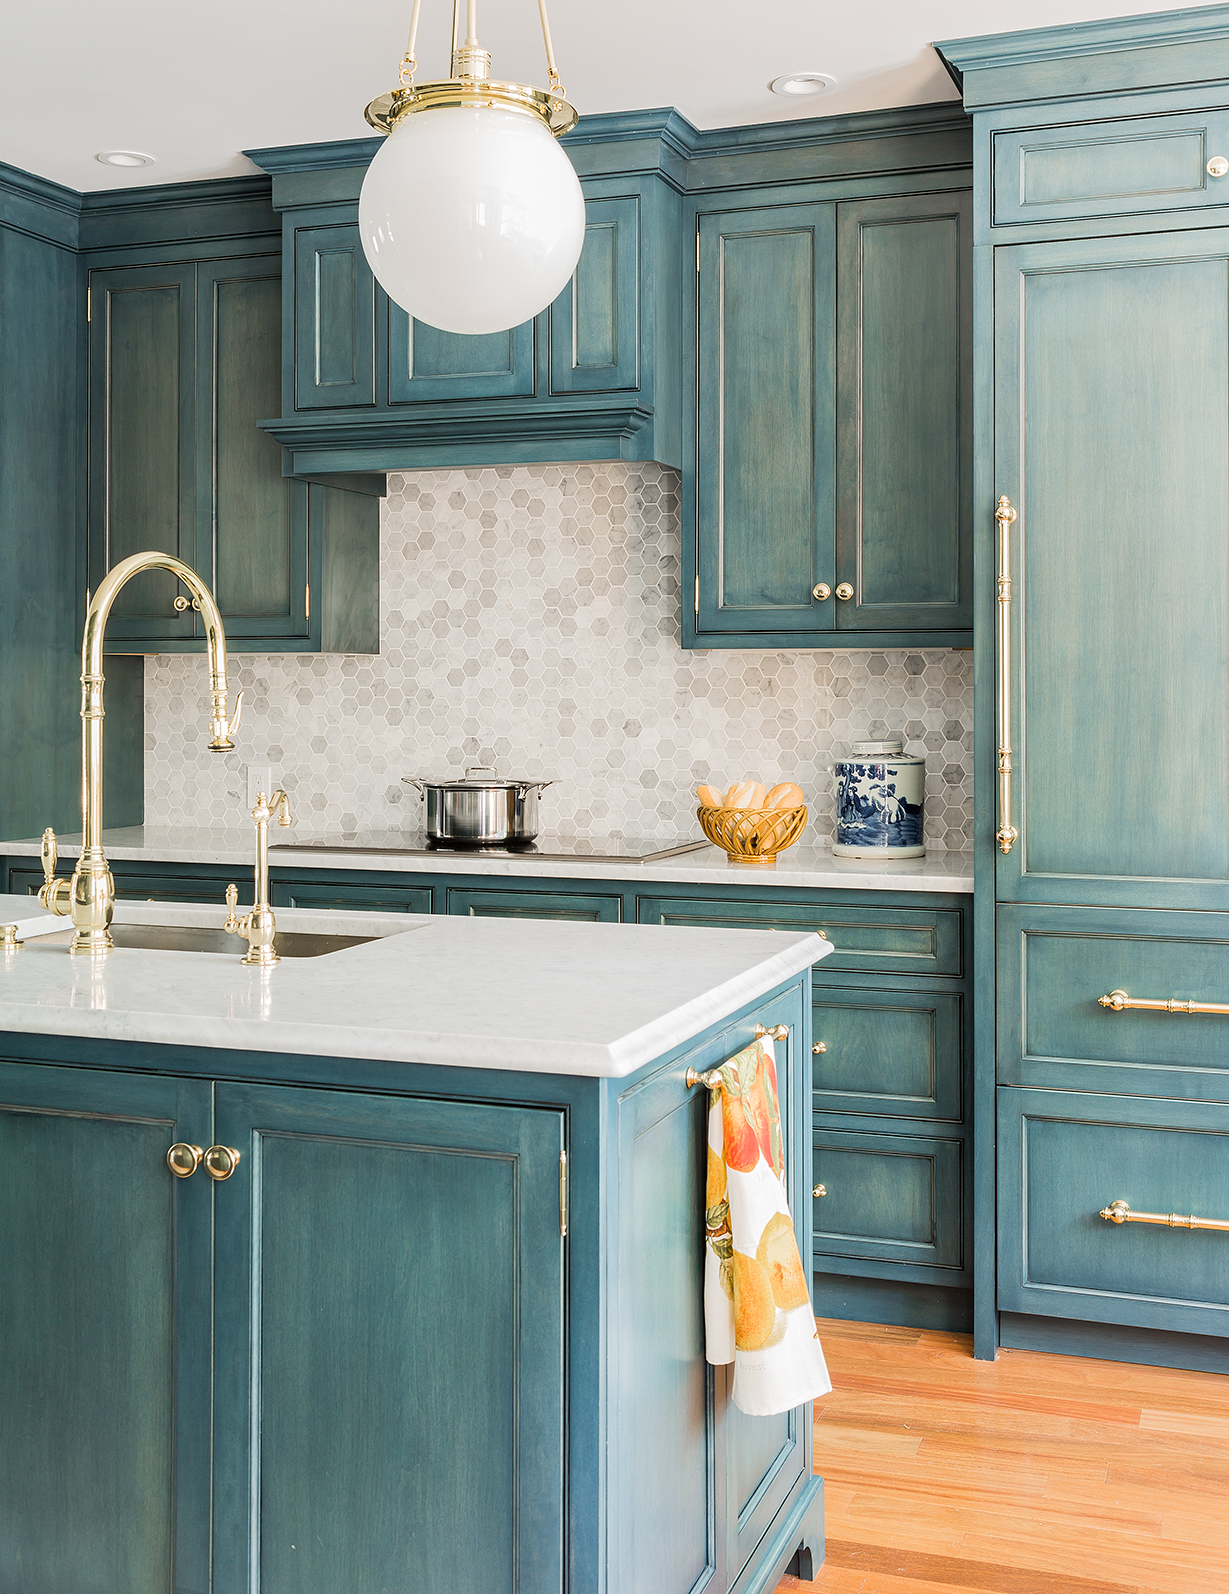 23 Gorgeous Blue Kitchen Cabinet Ideas on countertops for white kitchen cabinets, antique grey kitchen cabinets, wood countertop white cabinets, granite kitchen countertops and cabinets, white shaker kitchen cabinets, kitchen counters and cabinets, kitchen floor tile dark cabinets, best countertops for white cabinets, best pulls for white cabinets, kitchen design granite white cabinets, small kitchen design ideas with white cabinets, kitchen backsplash tiles with cherry cabinets, kitchen design ideas with oak cabinets, tile backsplash ideas for white cabinets, granite countertops white cabinets, pinterest white kitchen cabinets, kitchen remodel ideas white cabinets, antique white painted kitchen cabinets, kitchen paint color ideas with oak cabinets, kitchen backsplash ideas with maple cabinets,